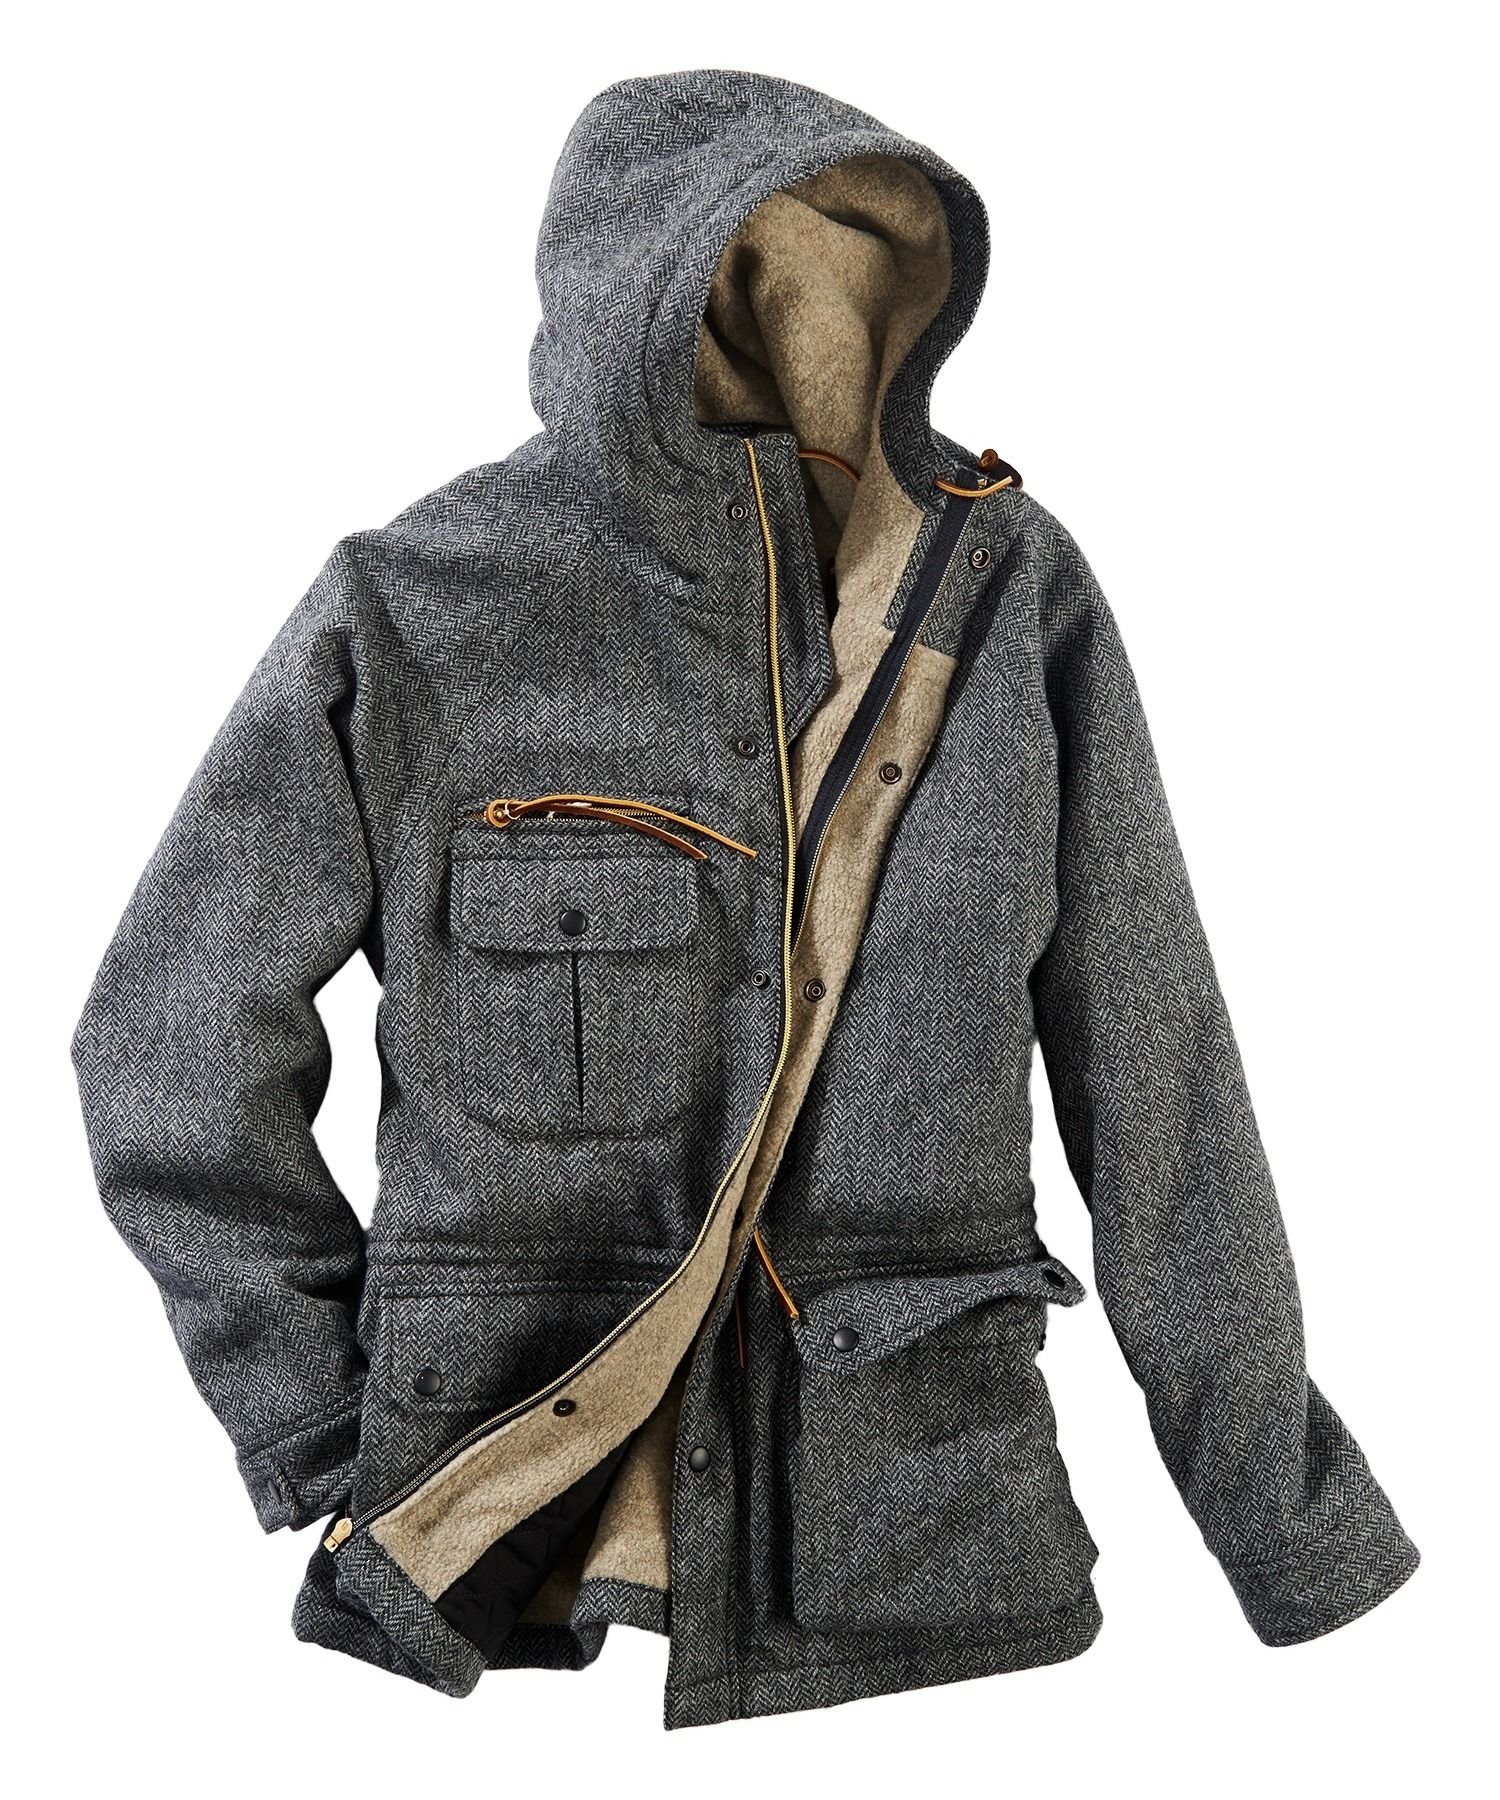 Men s Wool Mountain Parka by WOOLRICH® The Original Outdoor Clothing Company 755abf5a154